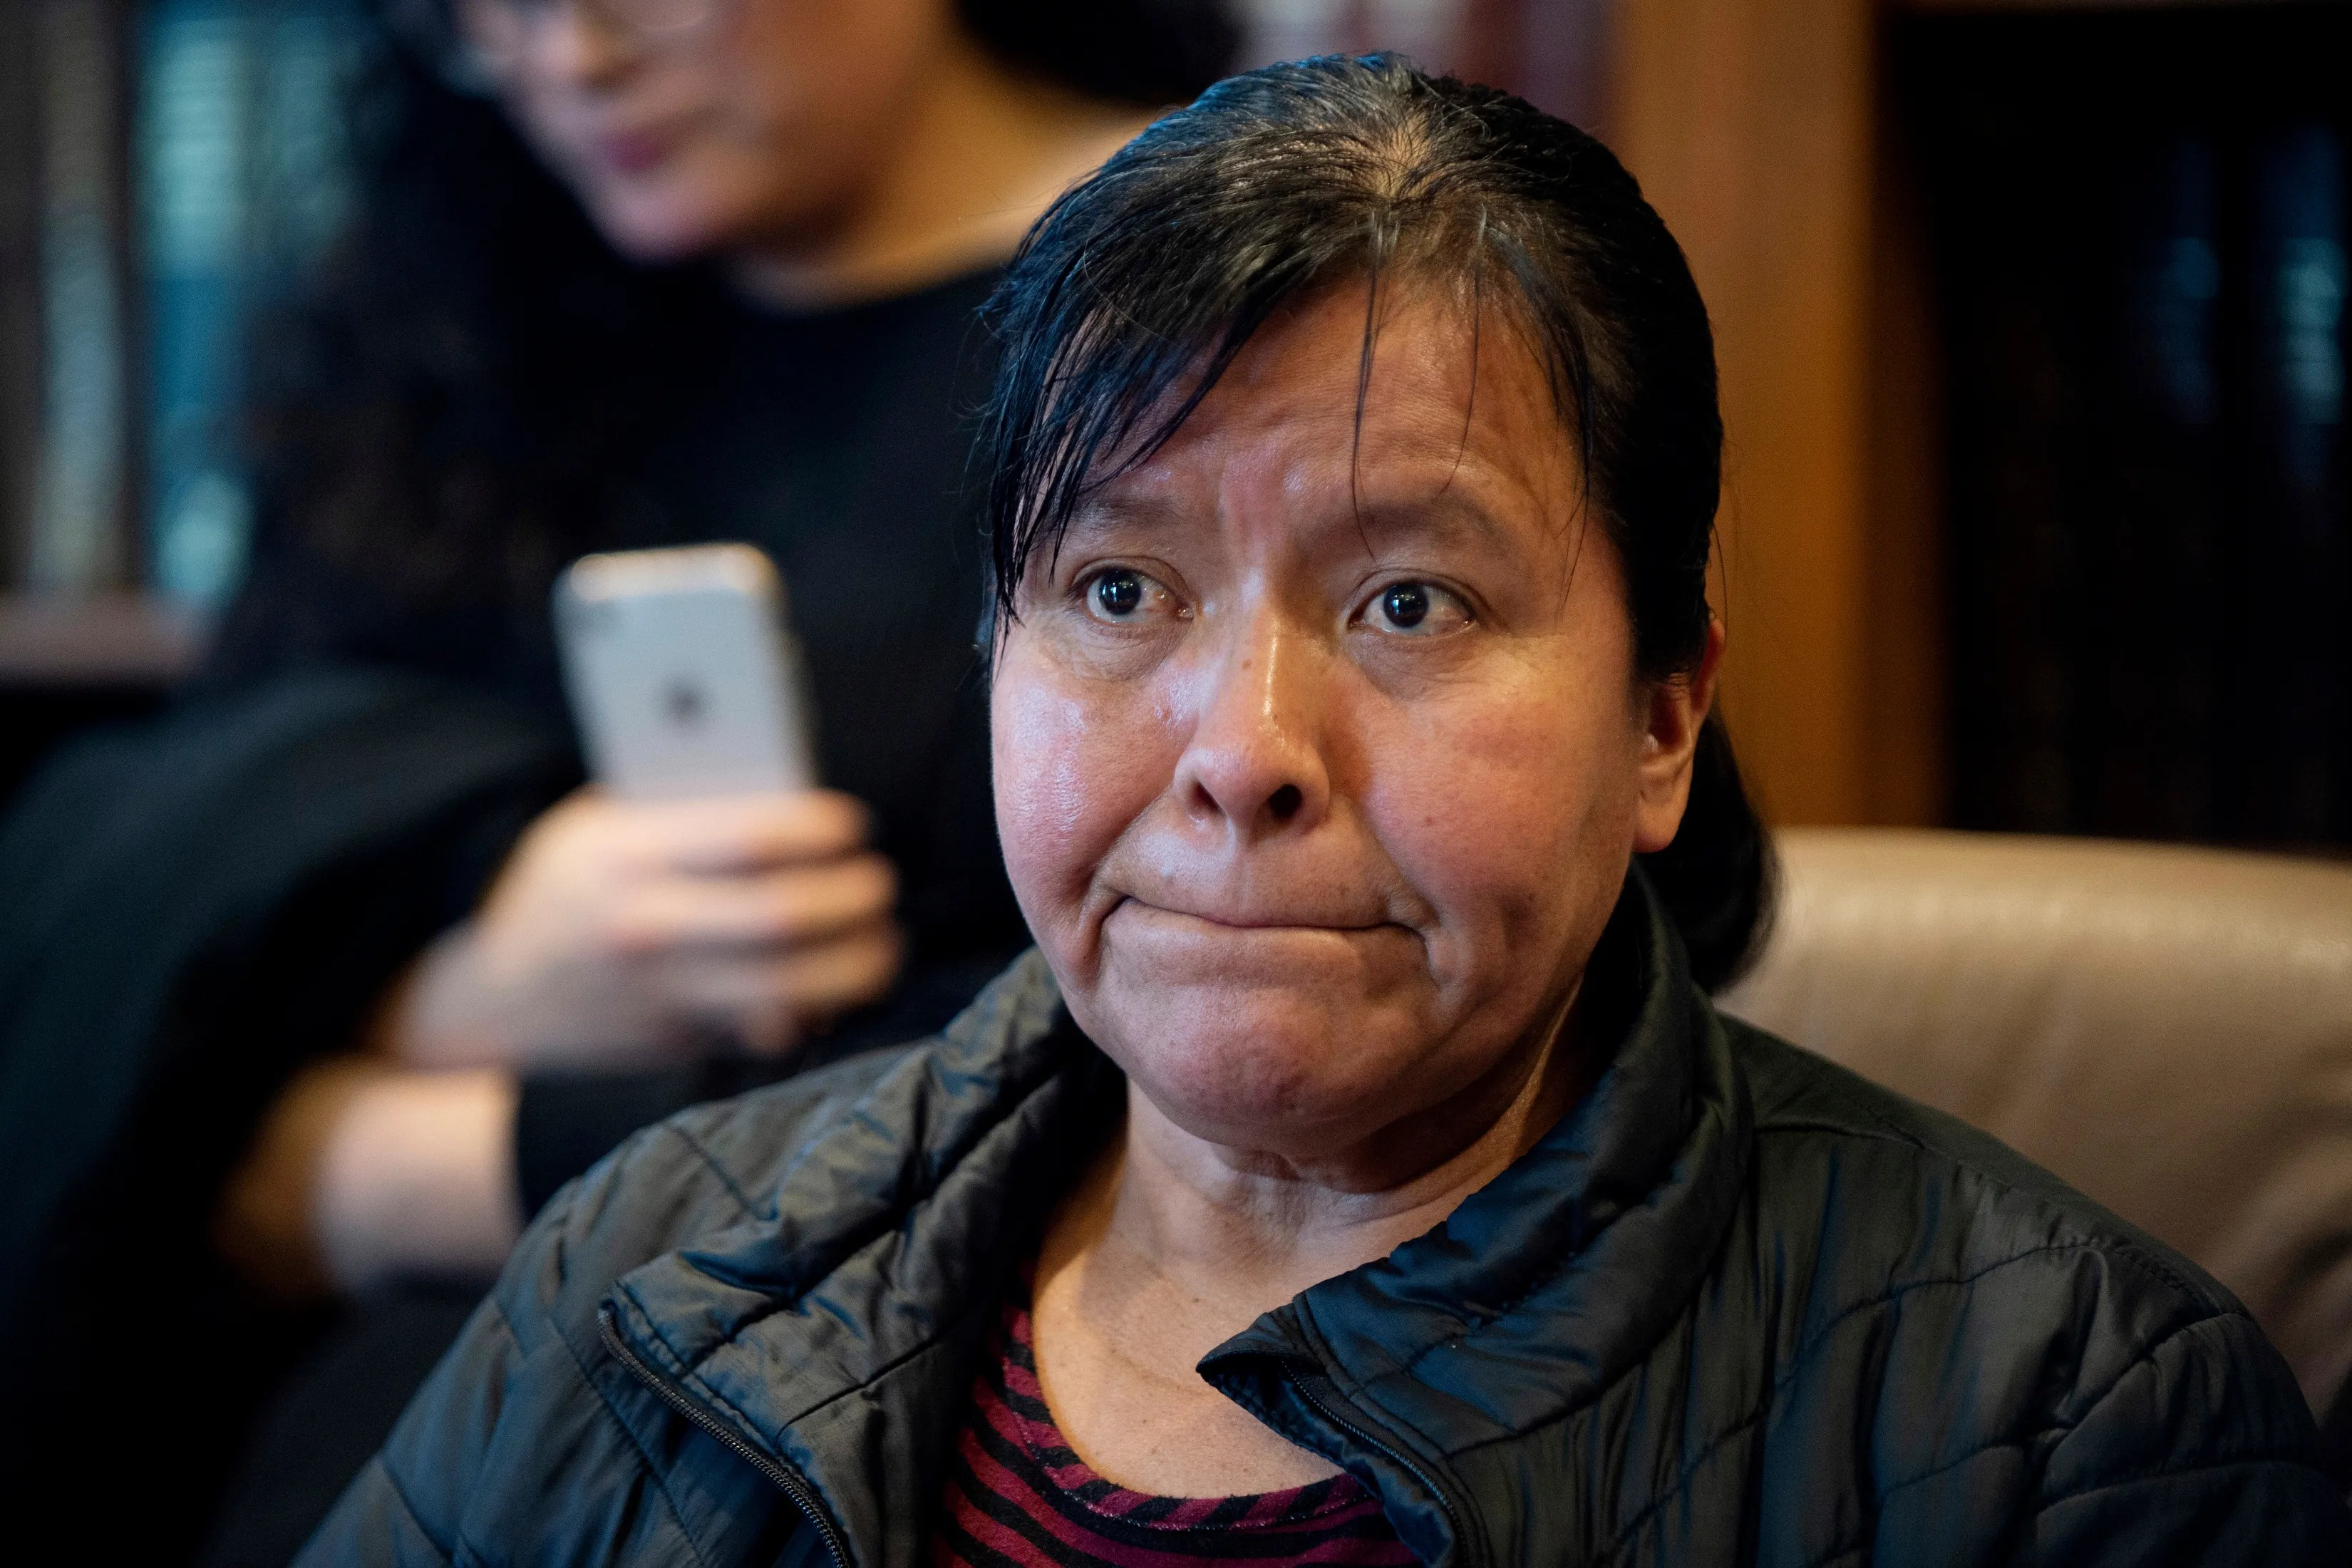 Maria Gomez speaks to the media at the office of attorney Richard Kessler in Grand Rapids, Mich., on Wednesday, Jan. 16, 2019. Gomez's son, Jilmar Ramos-Gomez, a U.S.-born Marine veteran was held for three days for possible deportation after pleading guilty to a disturbance at a western Michigan hospital.   (Neil Blake/The Grand Rapids Press via AP)